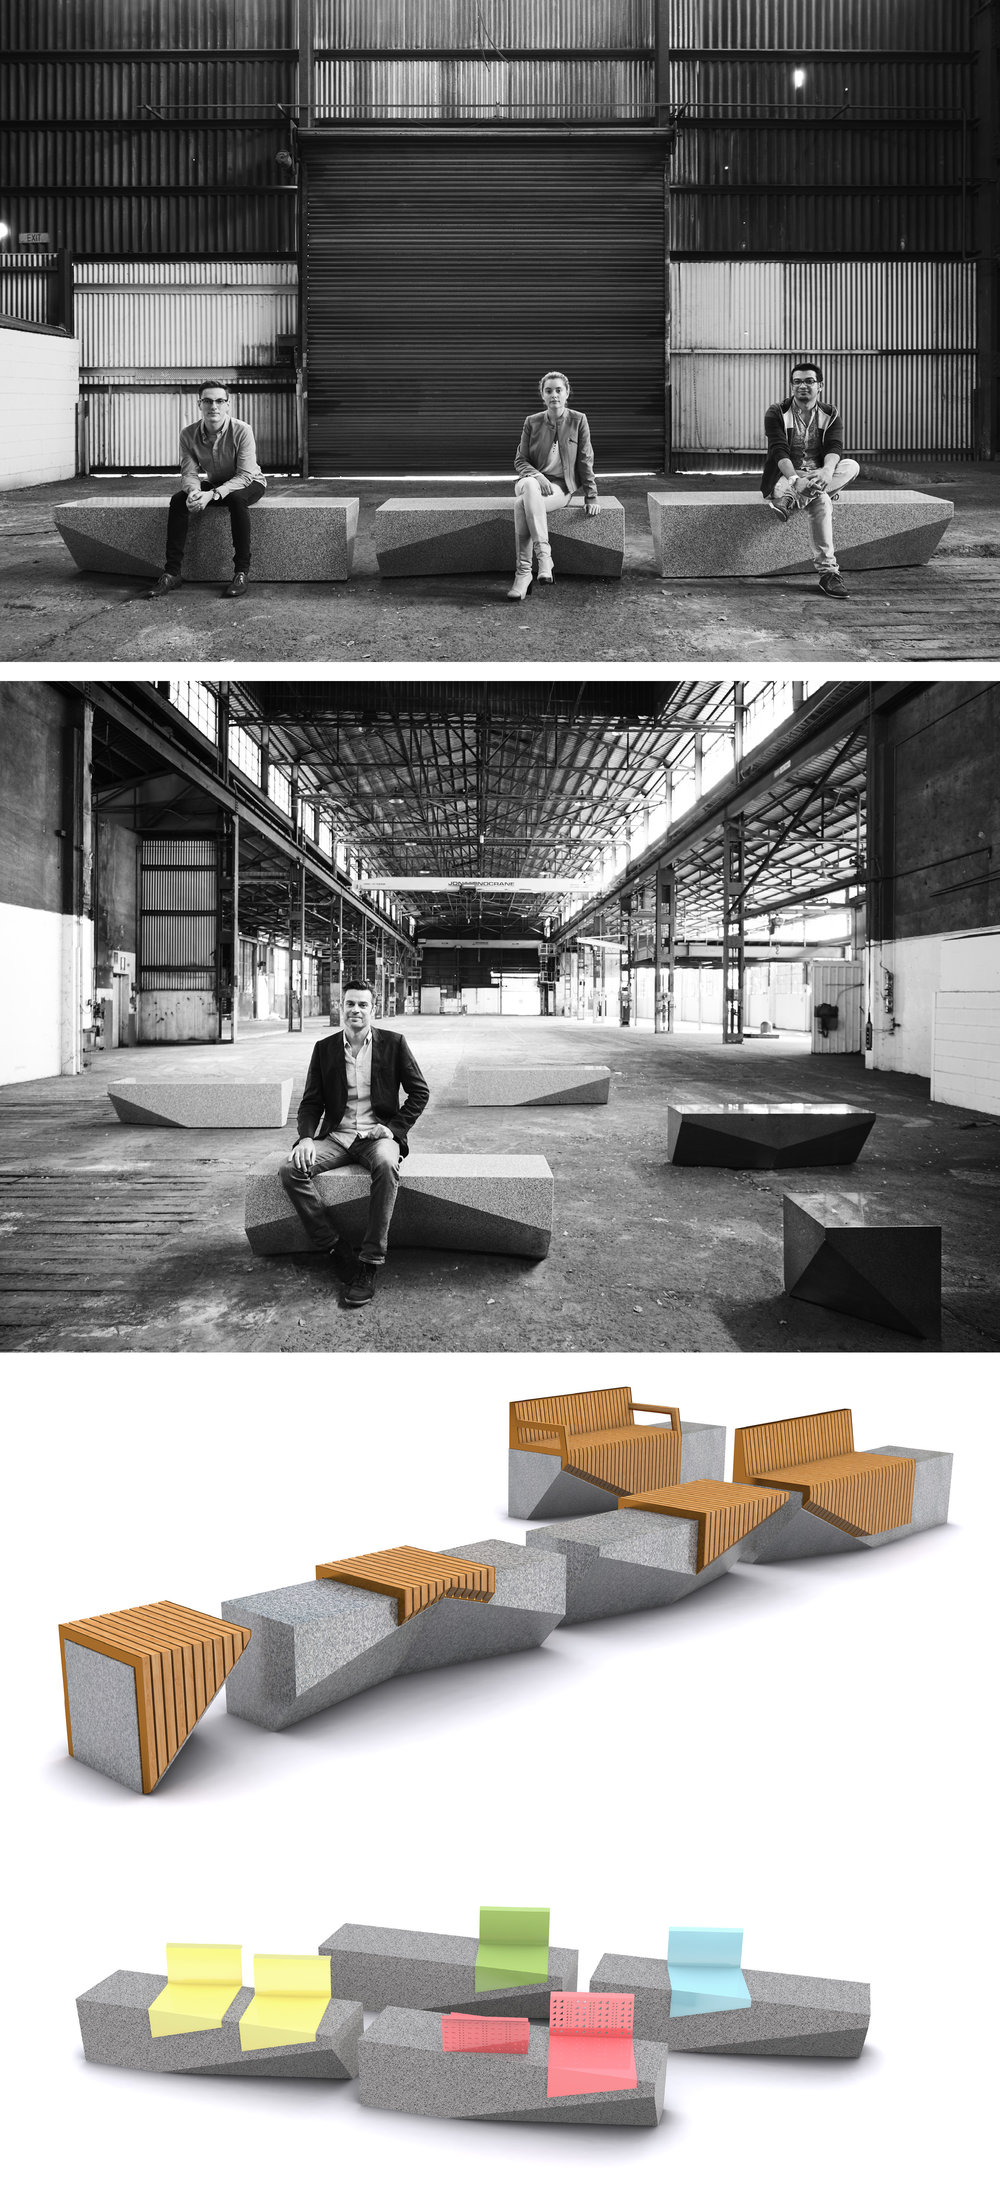 Charmant This Furniture Range Was Commissioned By UAP For Their SUPPLY Range And Can  Be Viewed And Ordered Through Their Website. Images 1 And 2 By Roger  Du0027Souza.